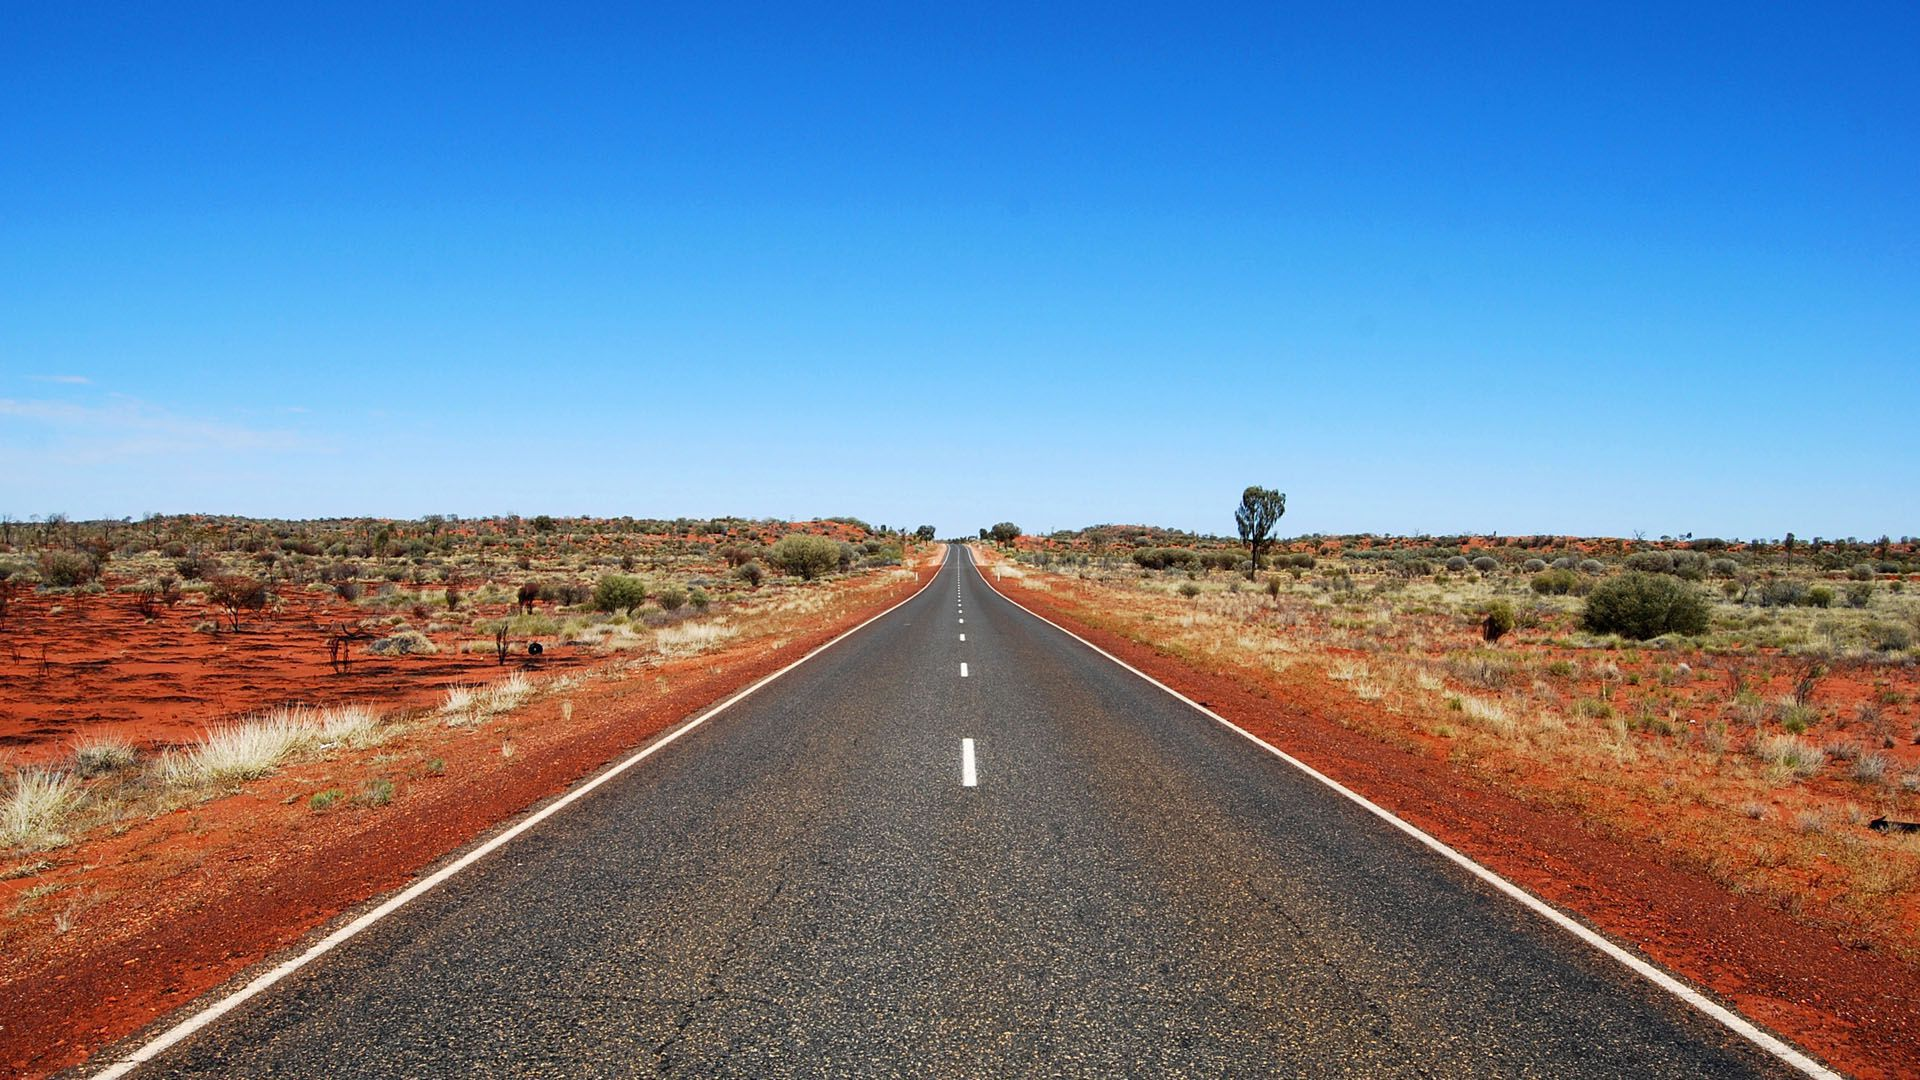 Wallpaper 1080p Outback Road Australia